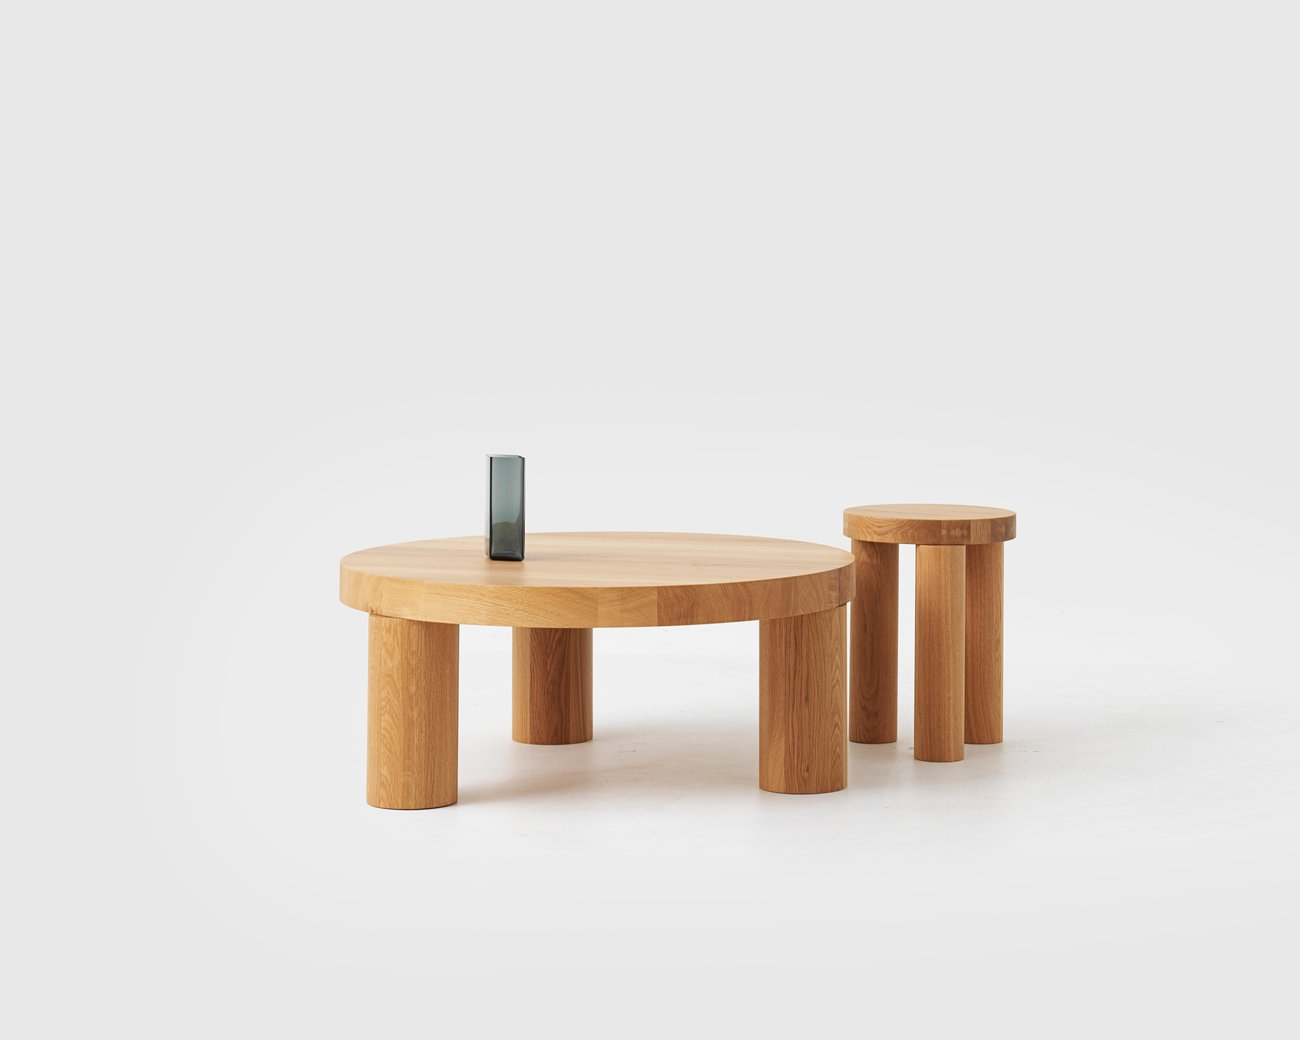 Image: uploads/2017_11/Offset-Table-and-stool-by-Philippe-Malouin-1.jpg